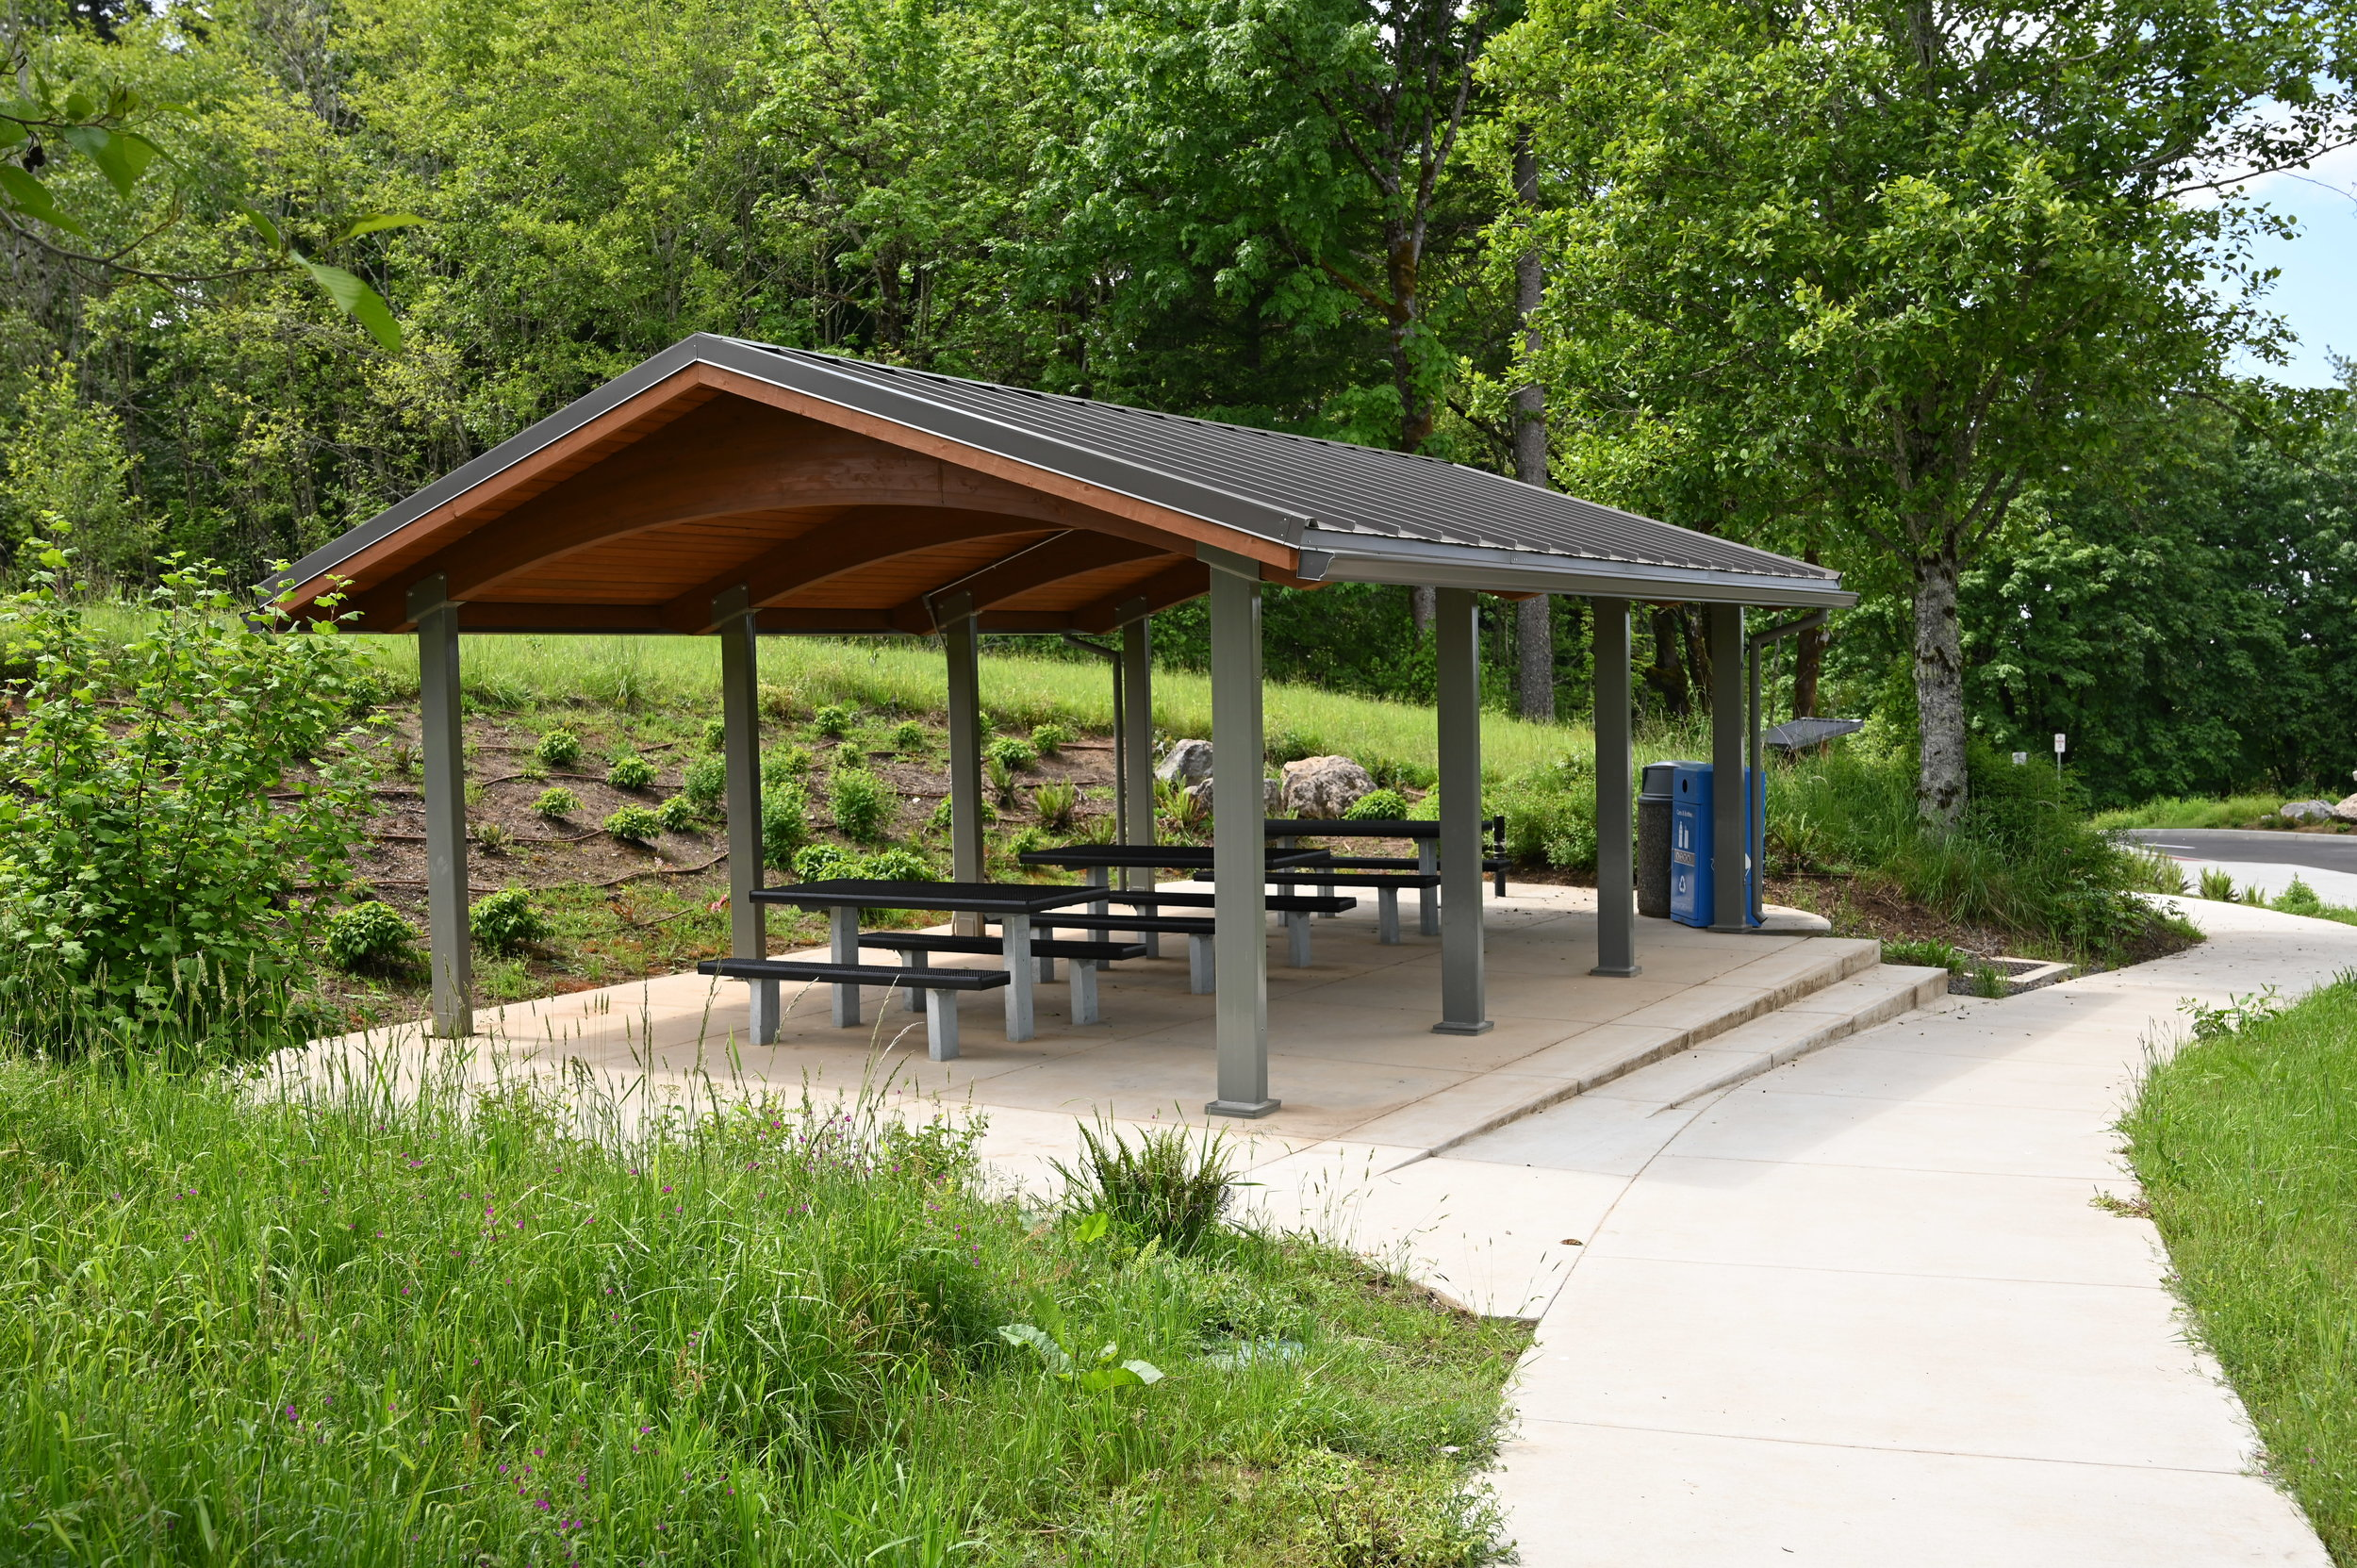 picnic shelter in front of a forest on a sunny day